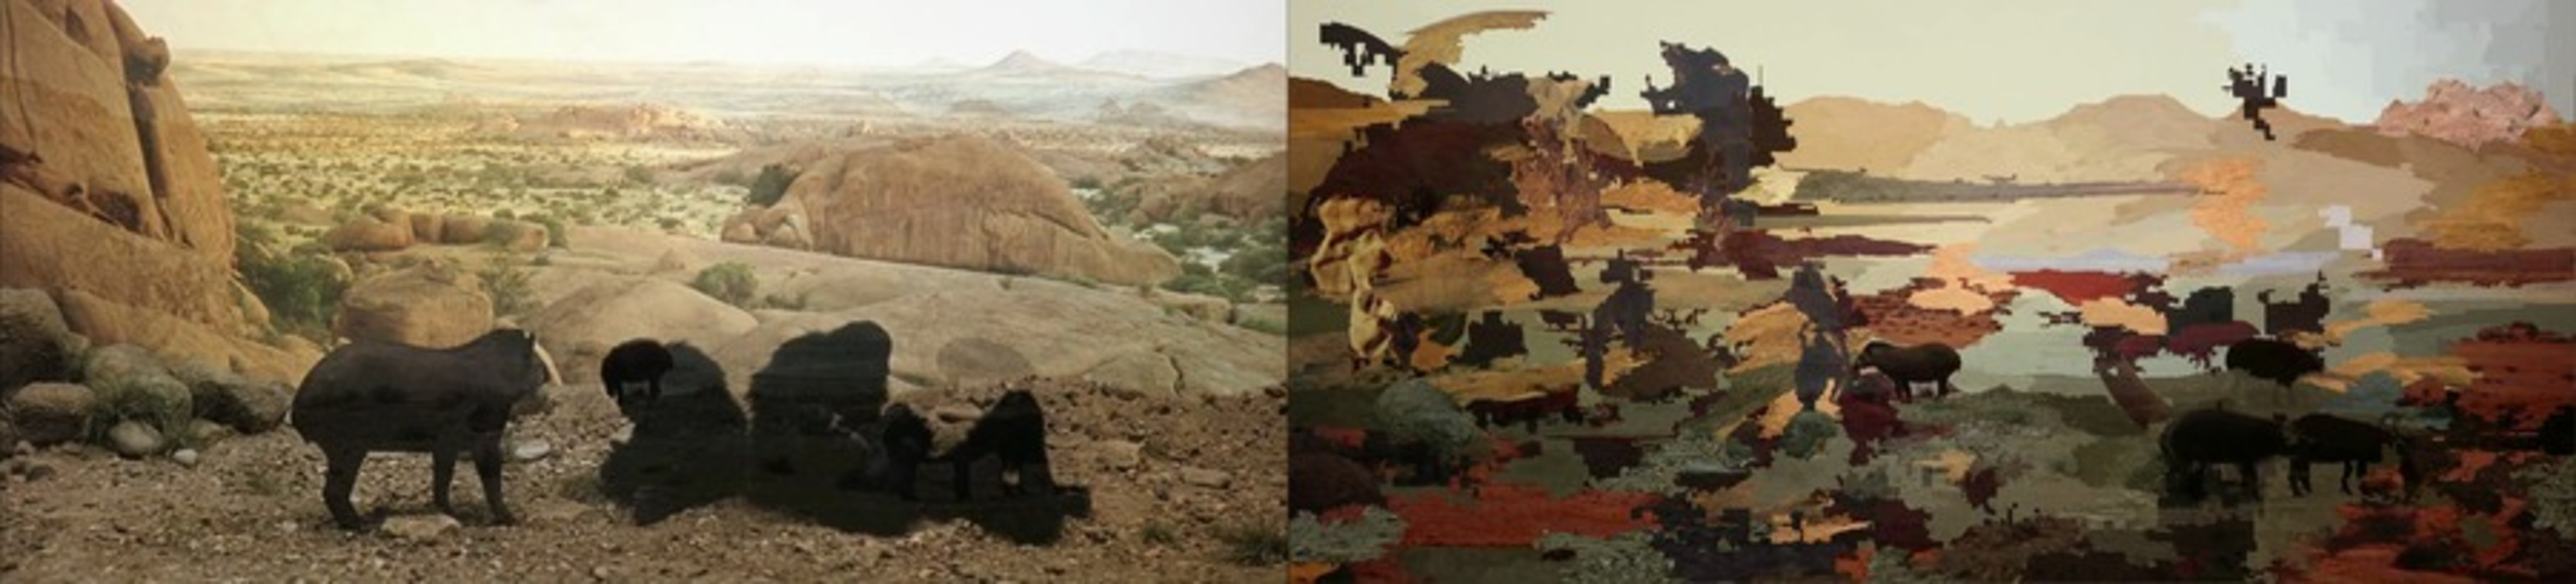 The image is clearly divided down the middle, creating a left side and a right side. Left side: a black pig-like animal near a group of seated and reclining black apes. They are in a rocky, sparsely vegetated landscape that extends to the horizon. Right side: splotches of color that do not clearly represent any scene. However, there is a horizon that echoes that of the left-side image.